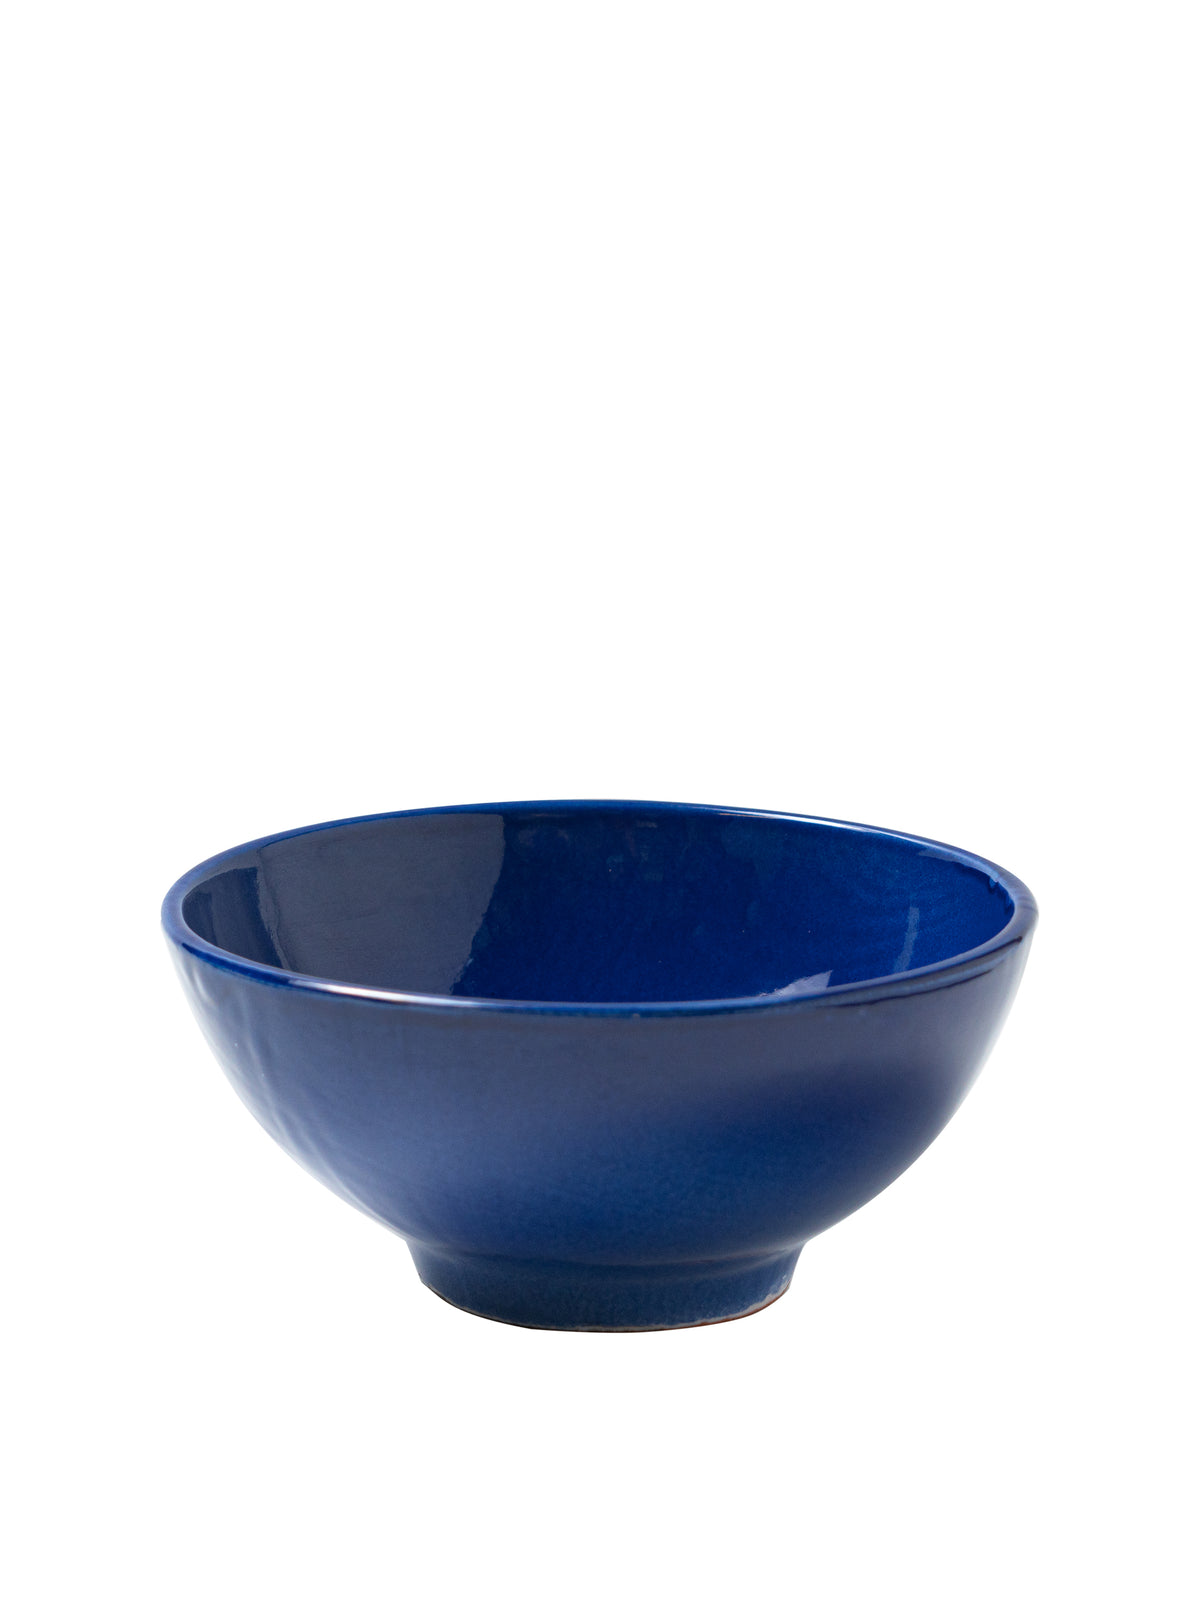 Casa Azul Medium Bowl with Blue Glaze